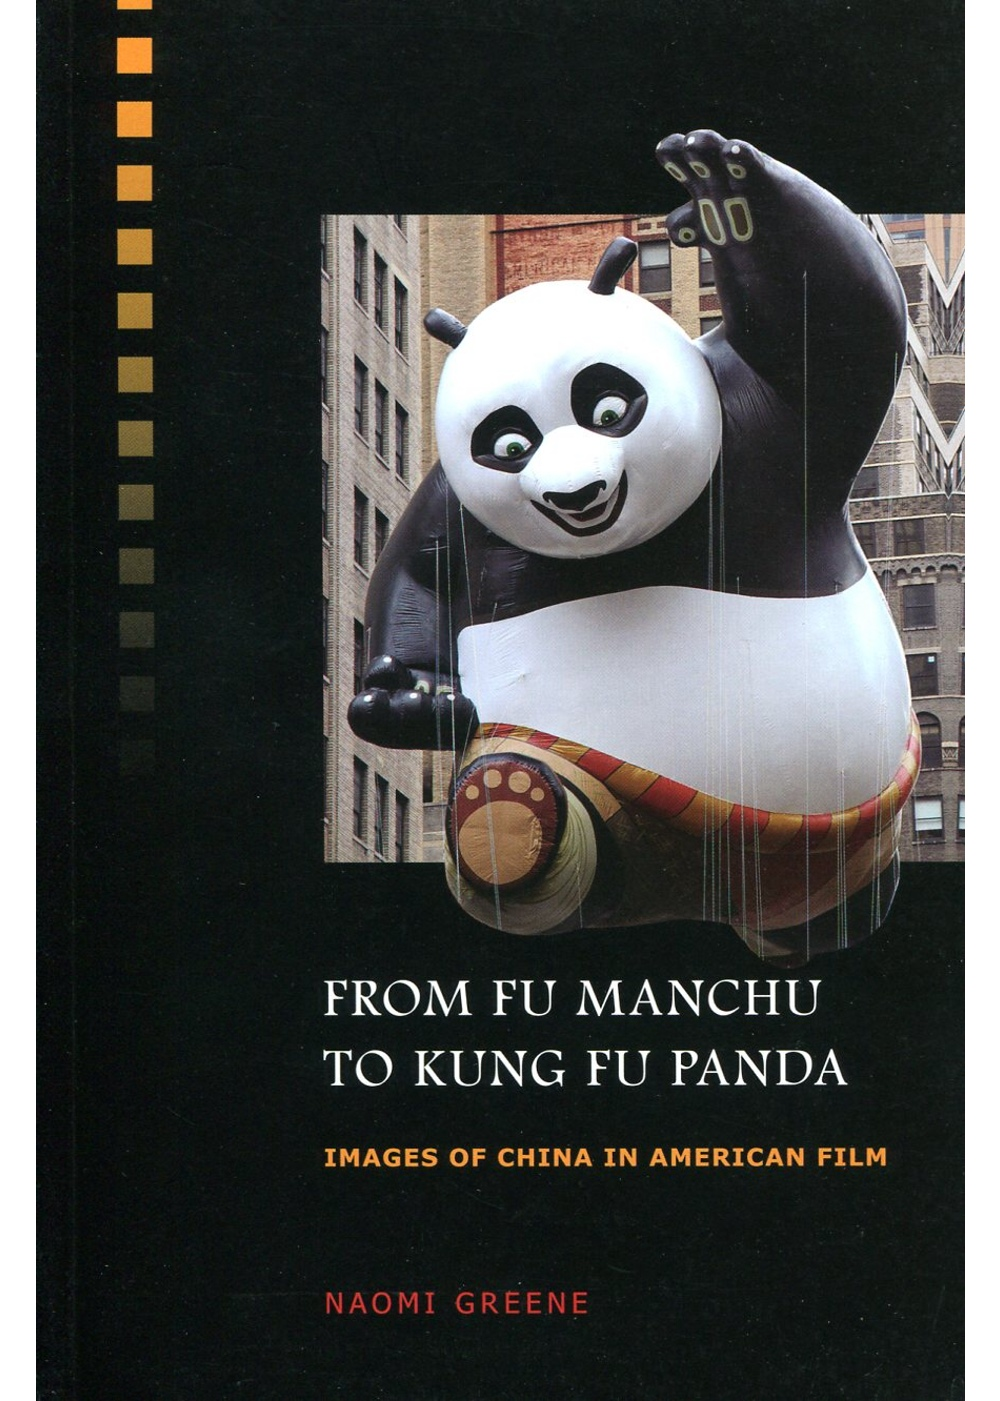 From Fu Manchu to Kung Fu Panda:Images of China in American Film